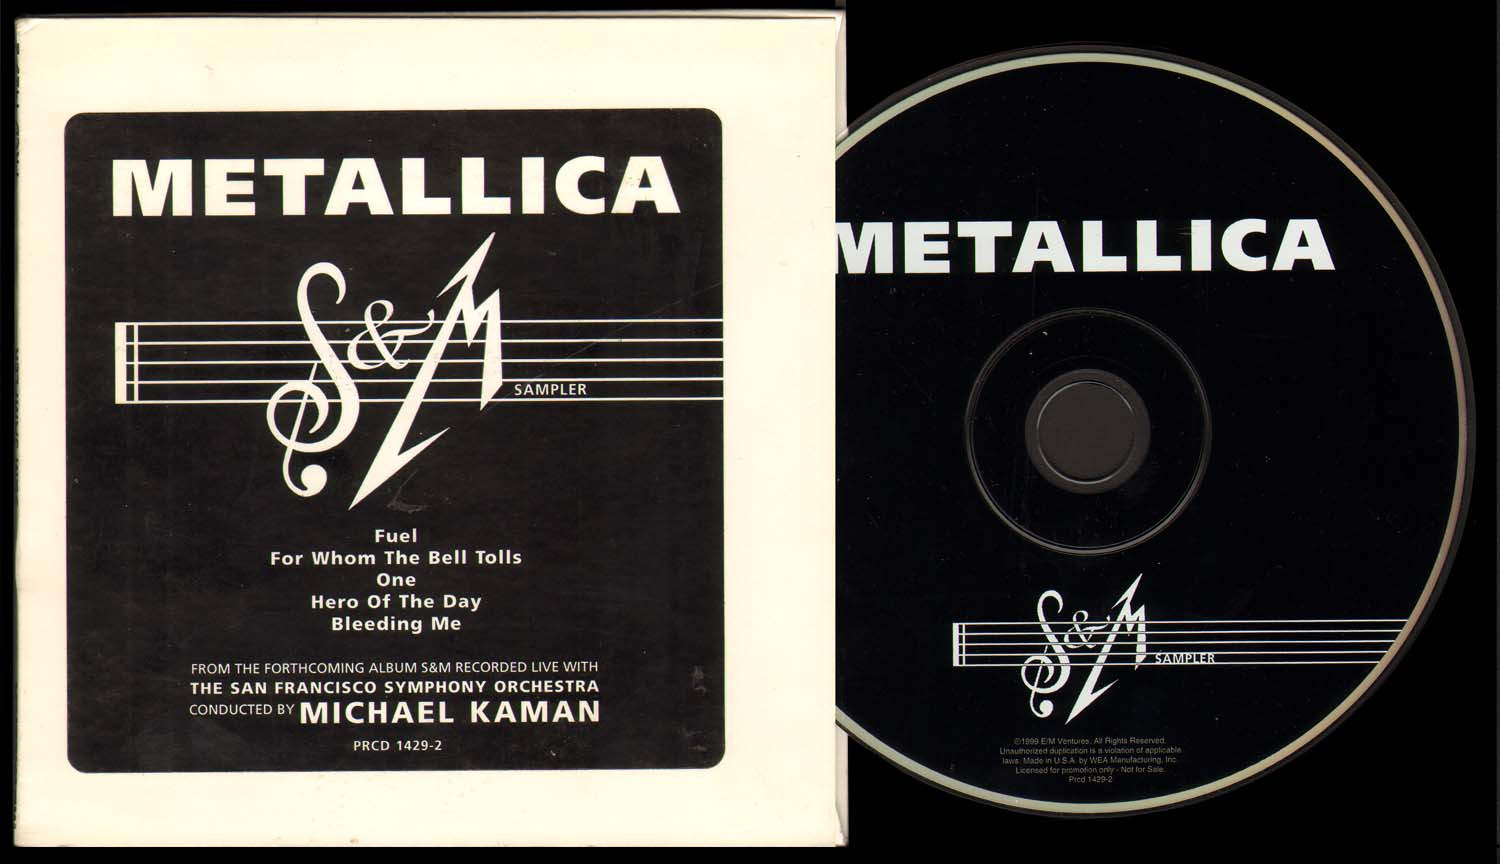 Symphony & Metallica - Fonts In Use